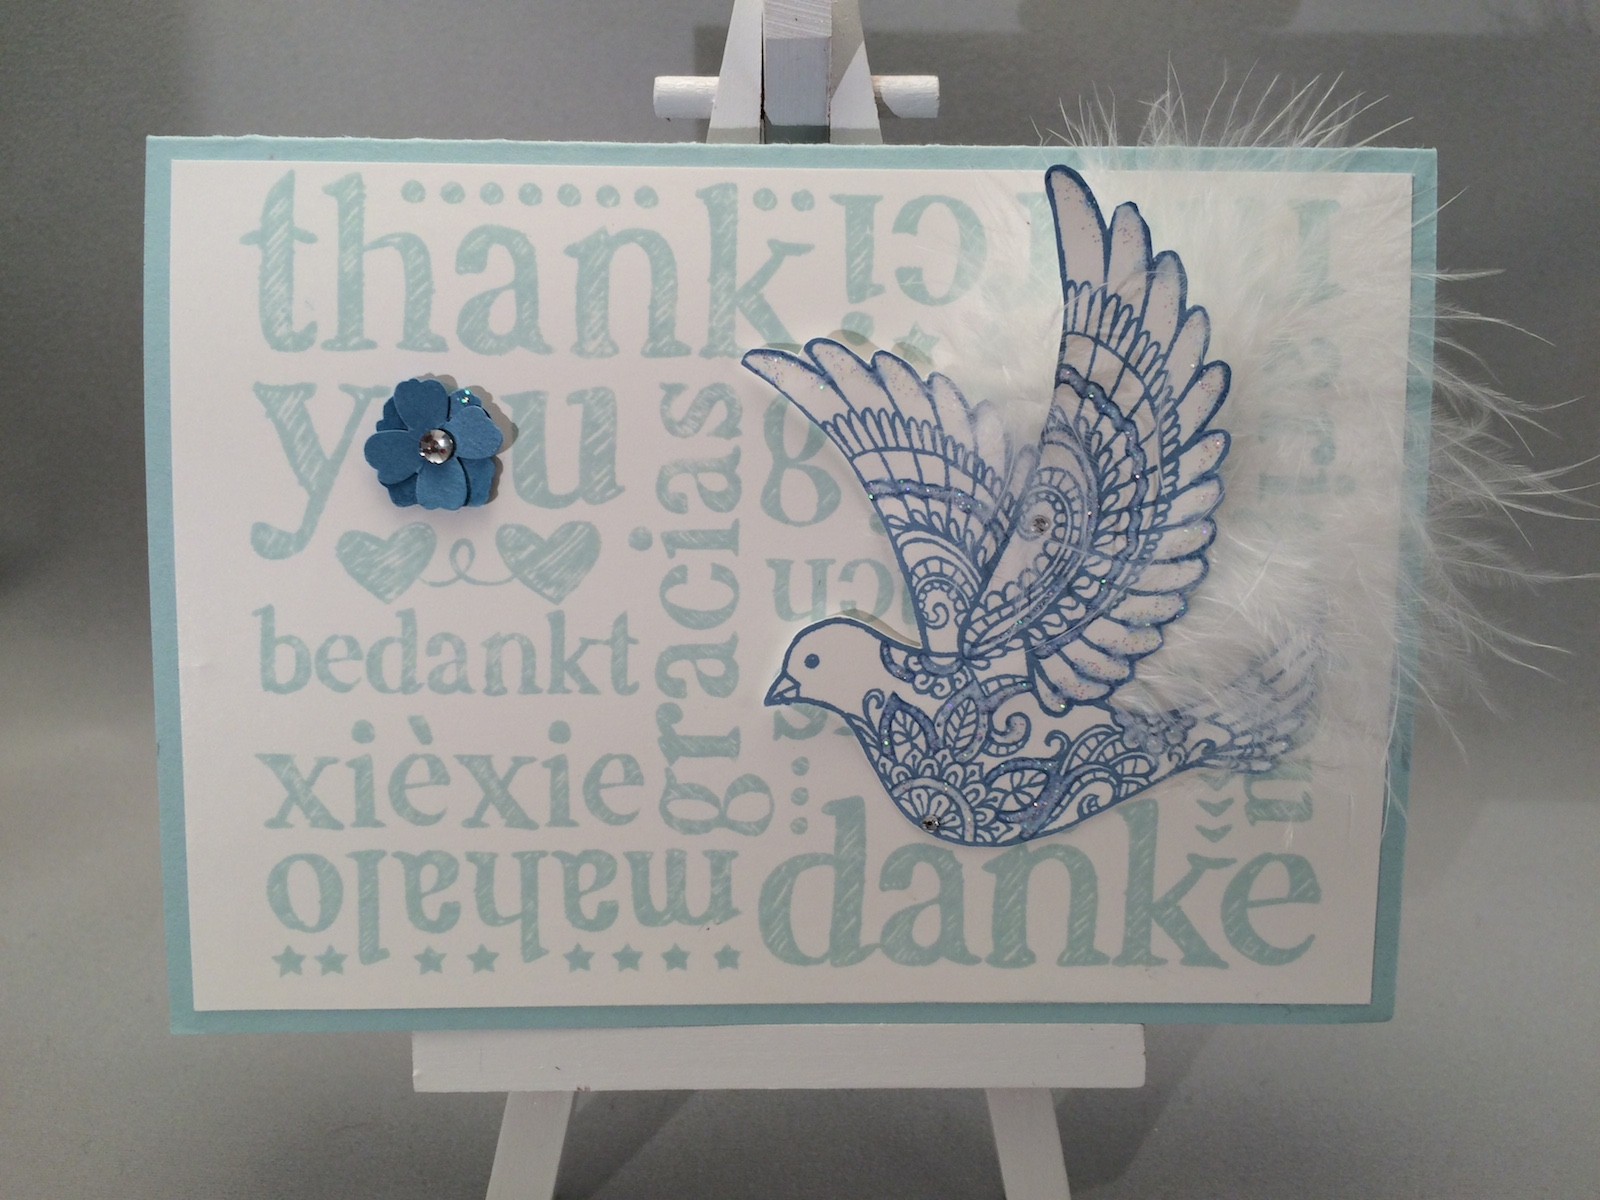 Danke Karte in Himmelblau und Ozeanblau, Stempel A World of Thanks und Dove of Peace.